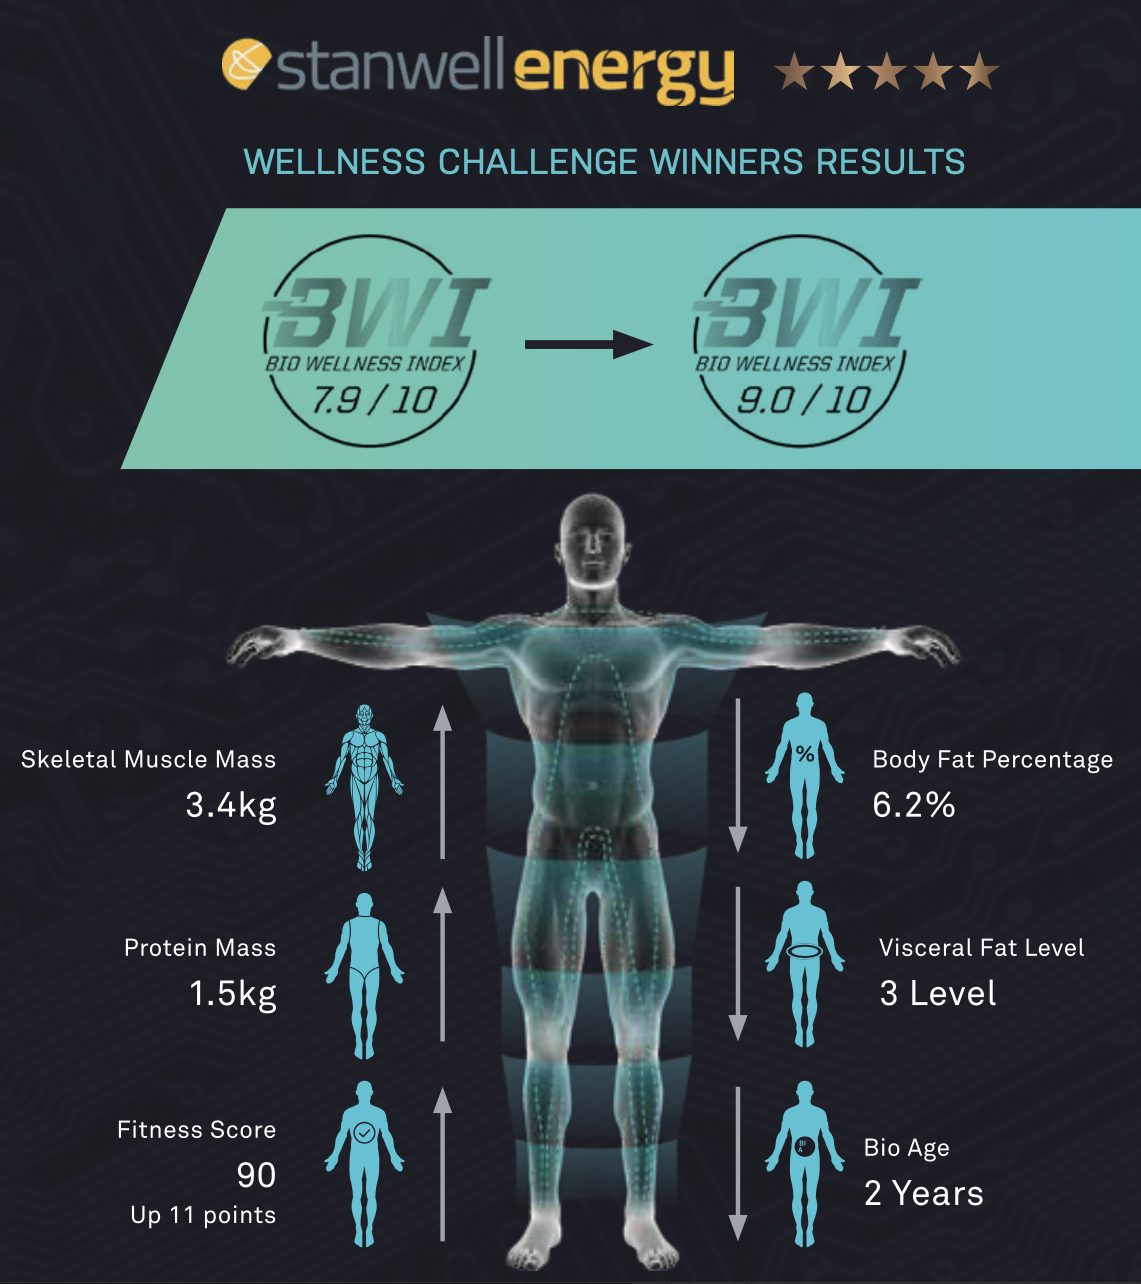 Stanwell Energy Corporate Wellness